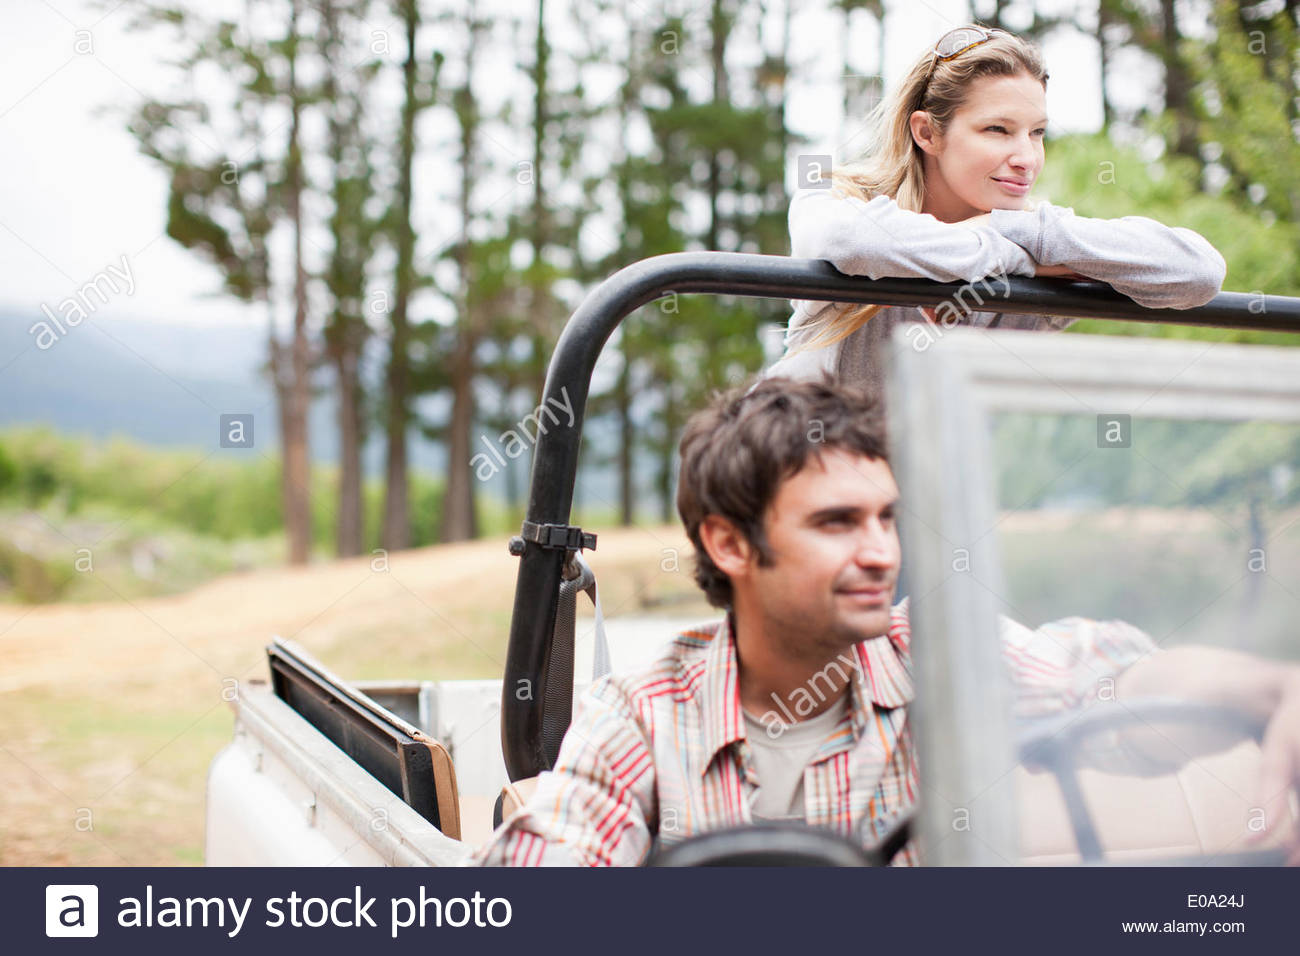 Couple riding in vehicle together - Stock Image